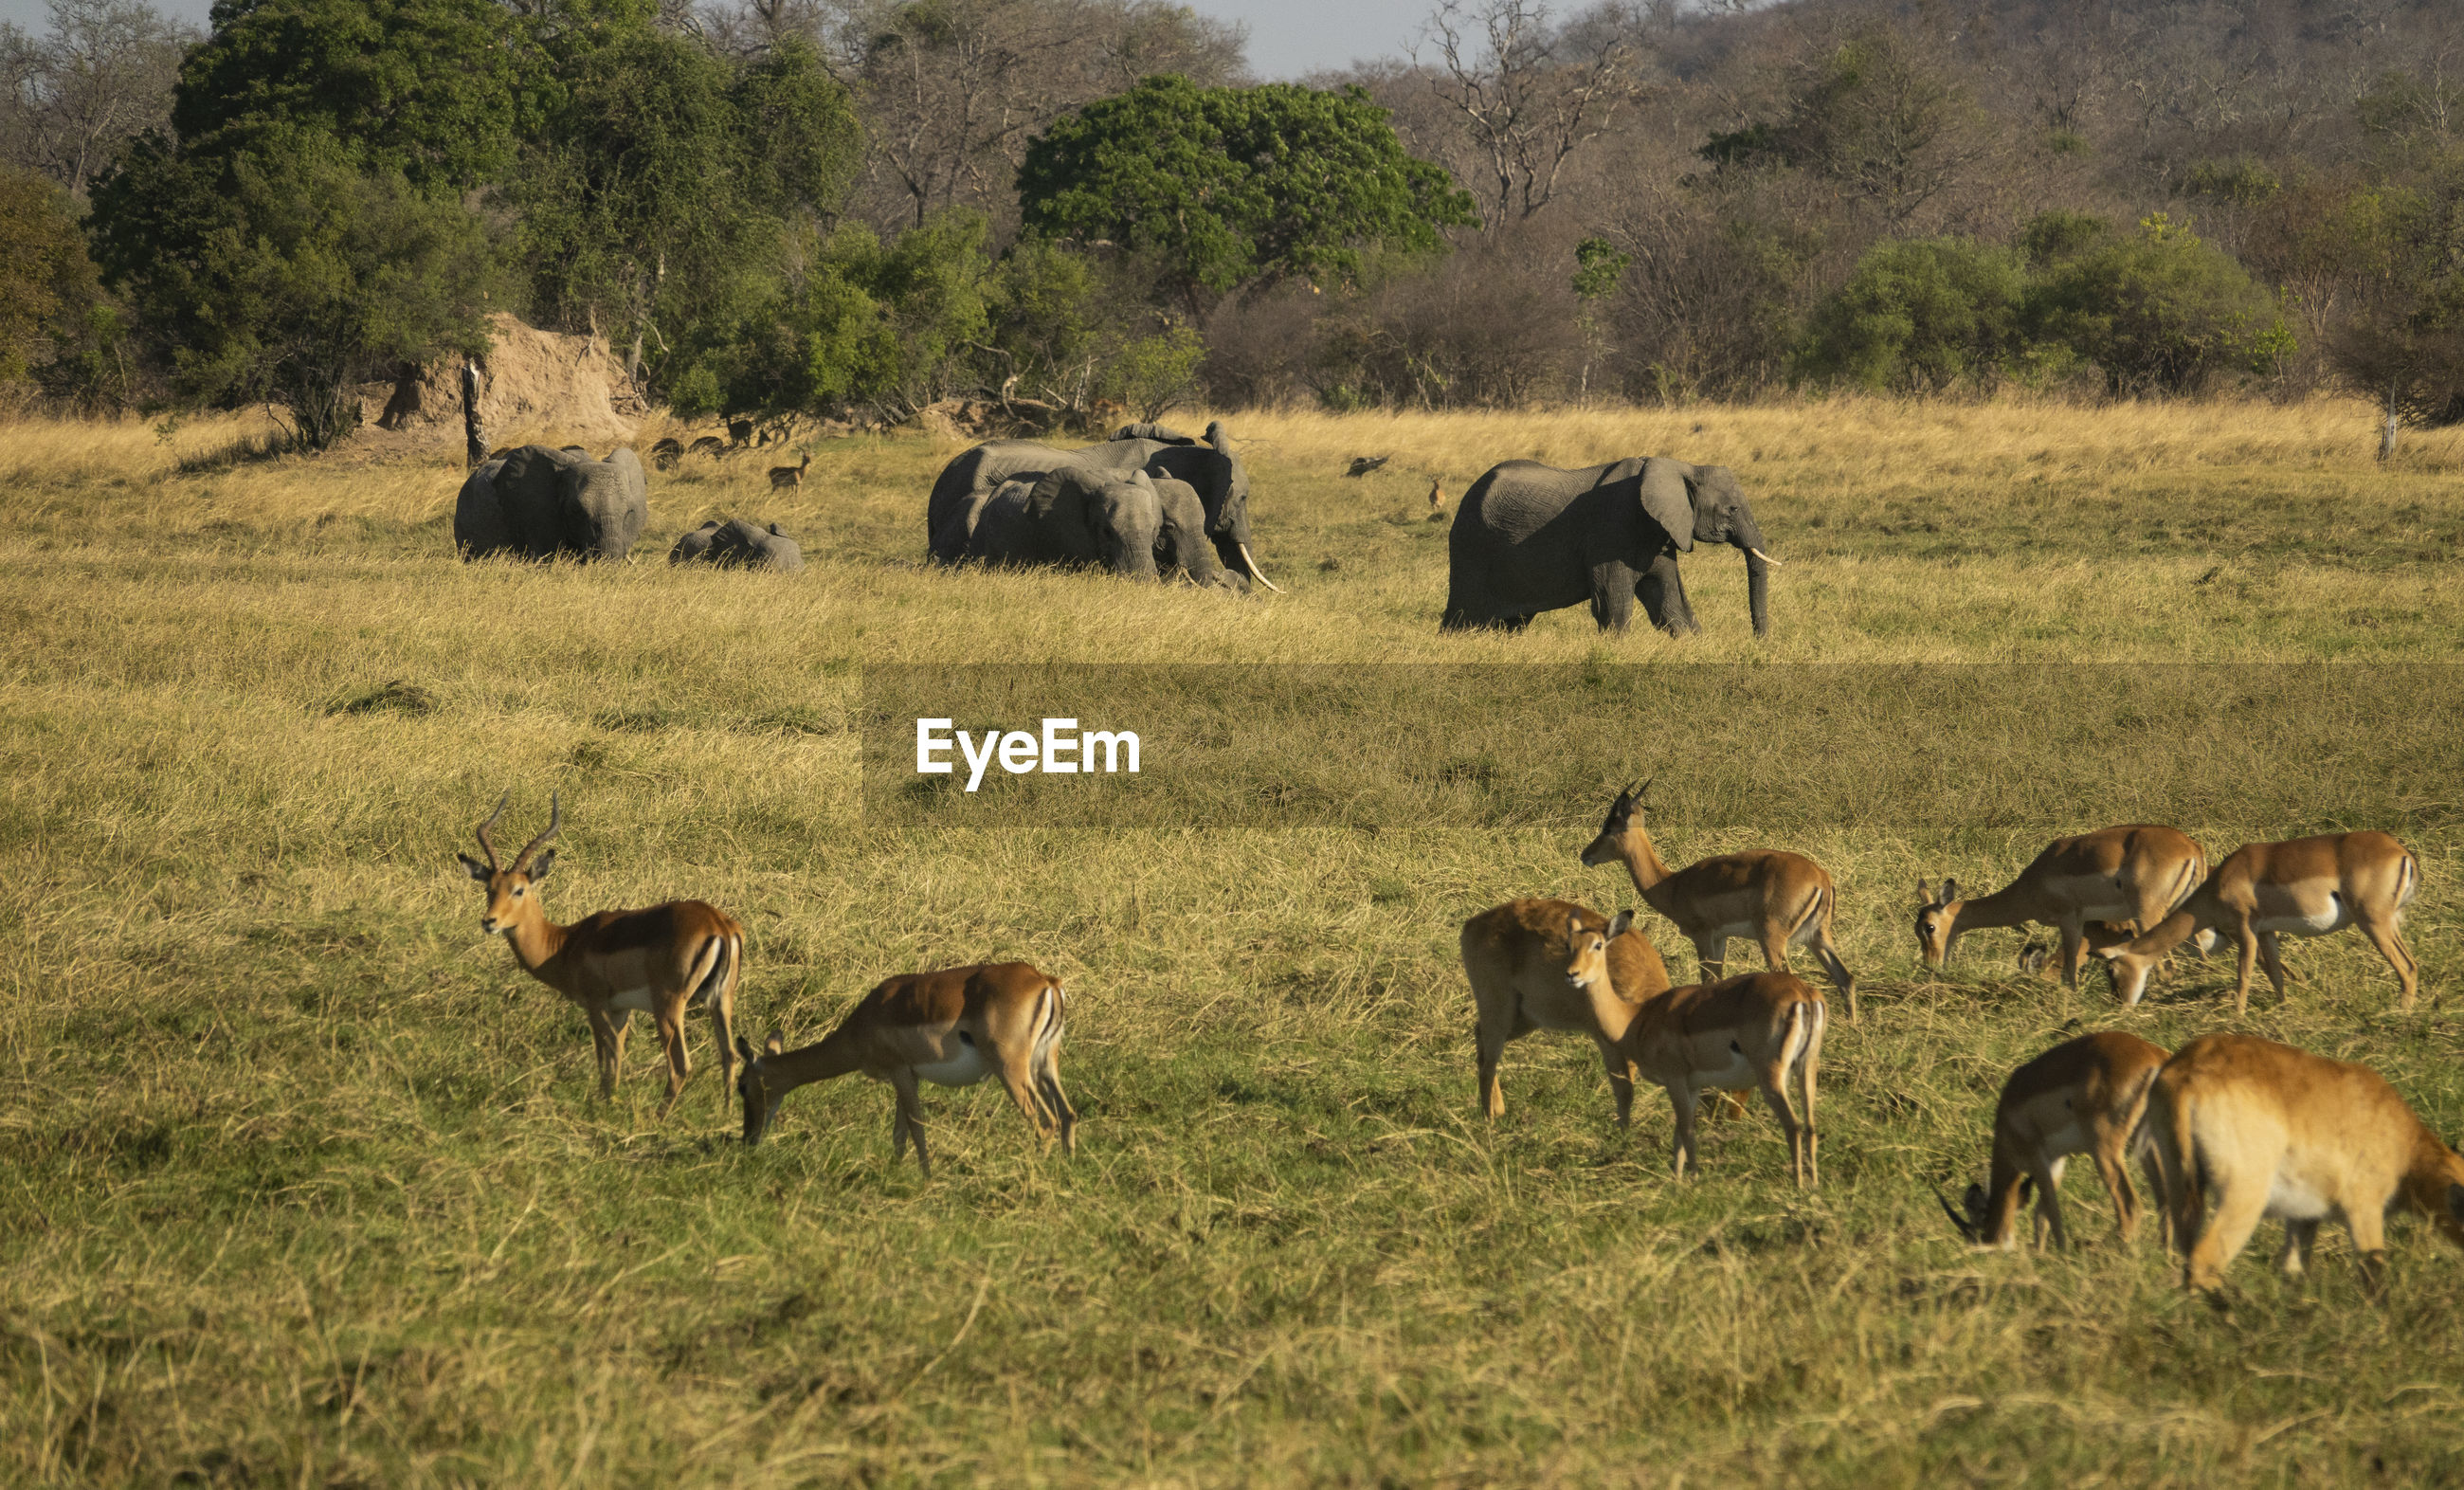 deers and elephants on the field in kafue national park